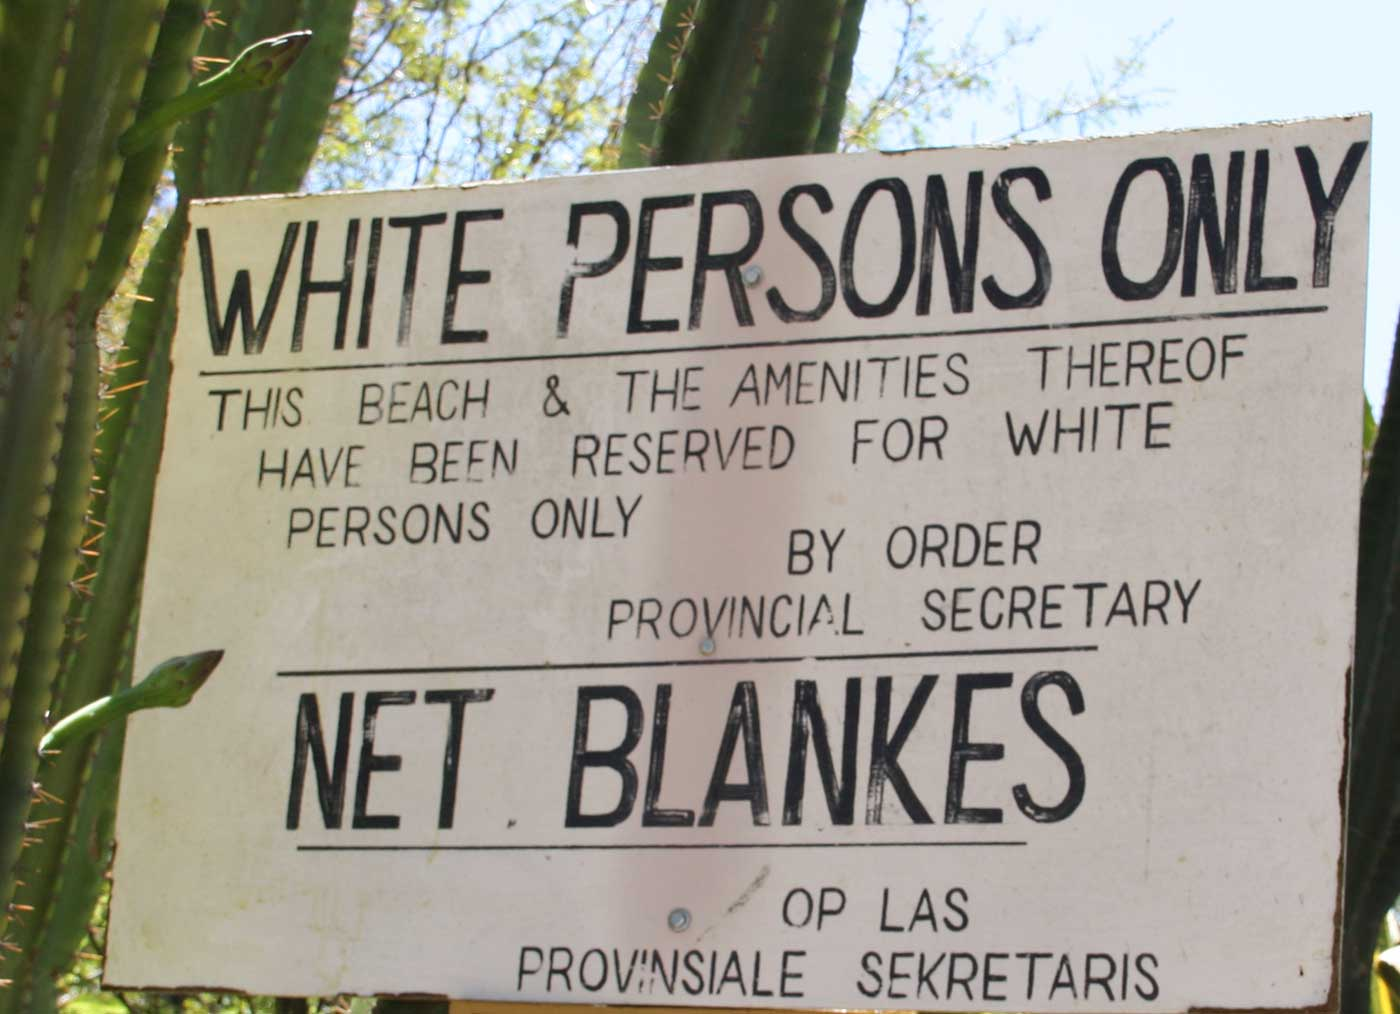 an introduction to the history of apartheid in africa Find out more about the history of apartheid 1990 and negotiated the end of apartheid in south africa bringing peace to a racially divided introduction.